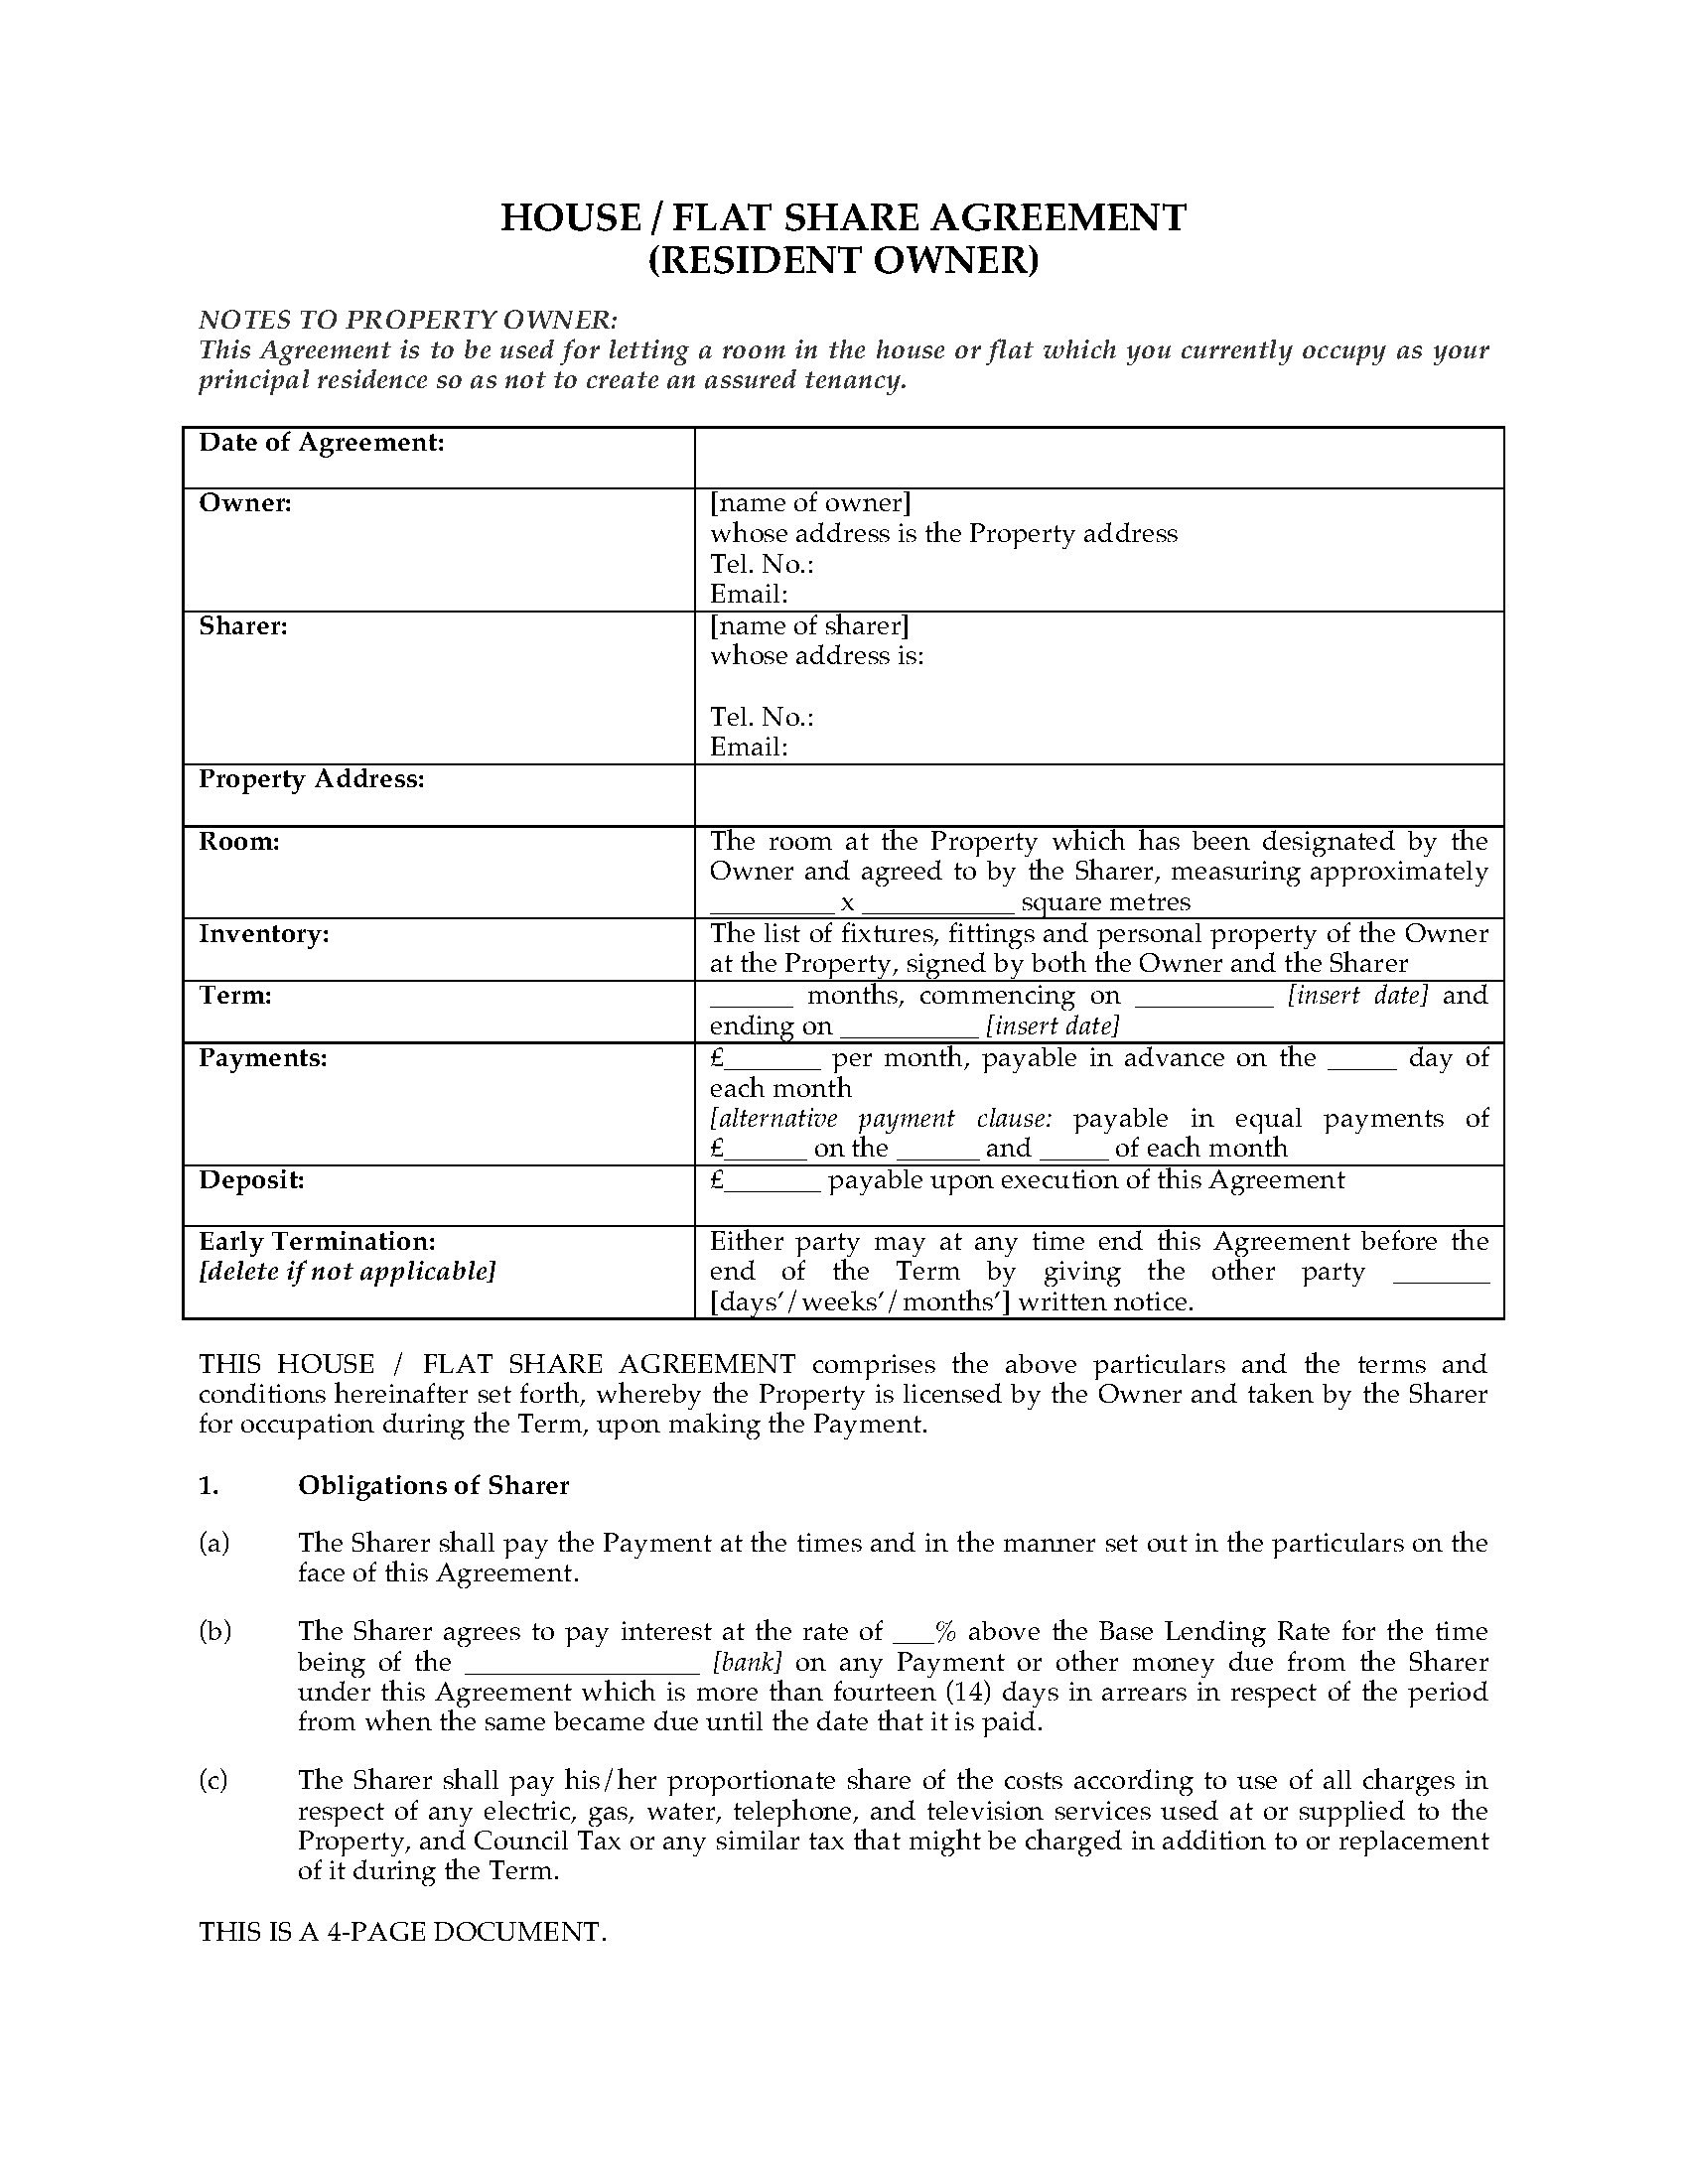 Uk House  Flat Share Agreement With Resident Owner  Legal Forms Pertaining To House Share Tenancy Agreement Template